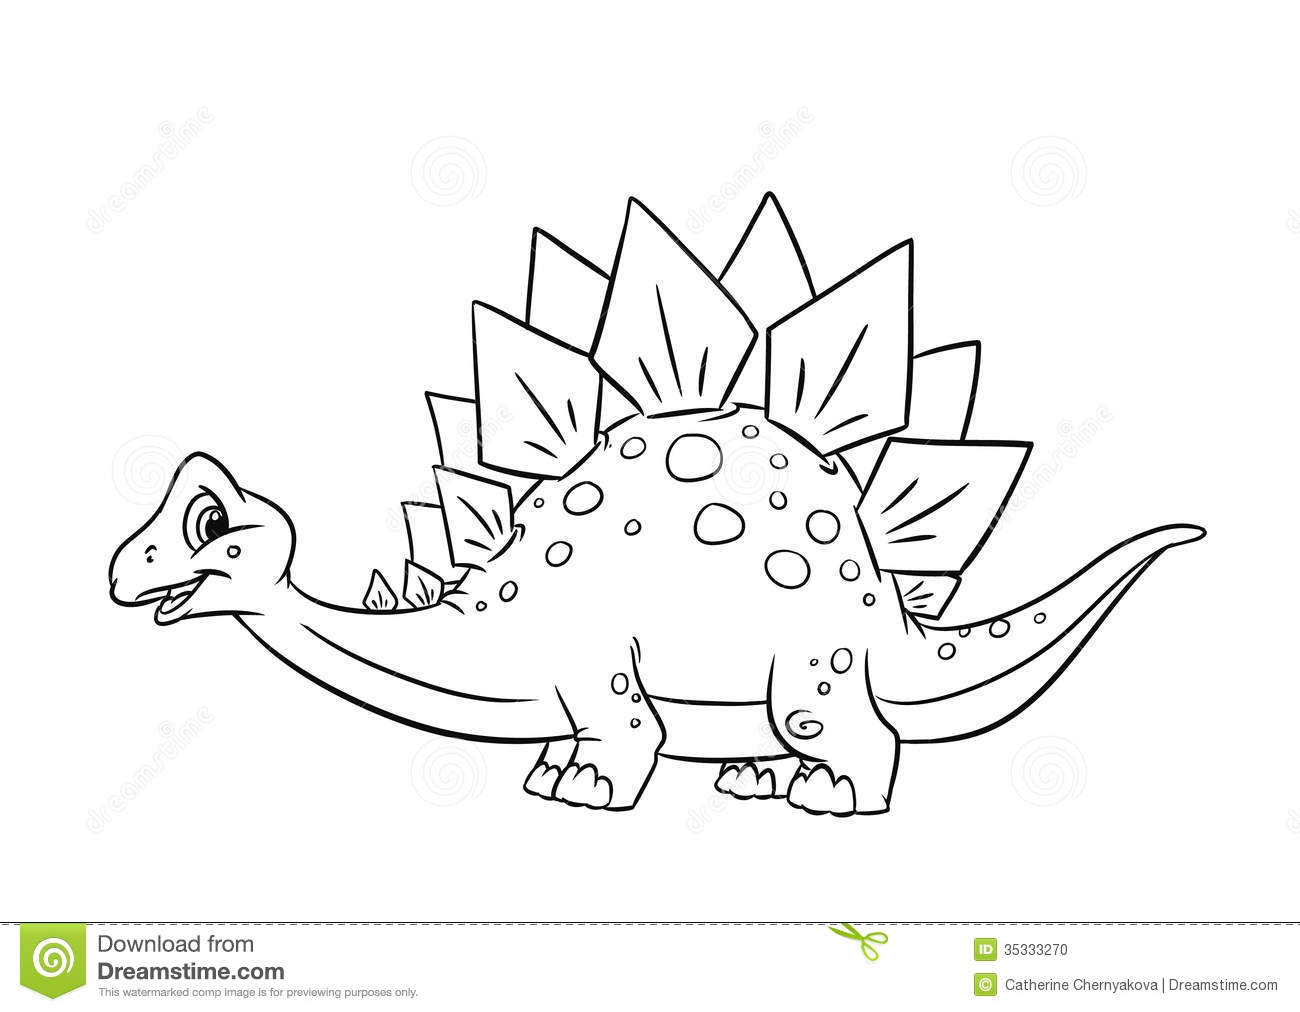 dinosaur stegosaurus coloring pages stock illustration illustration of cretaceous prehistoric. Black Bedroom Furniture Sets. Home Design Ideas